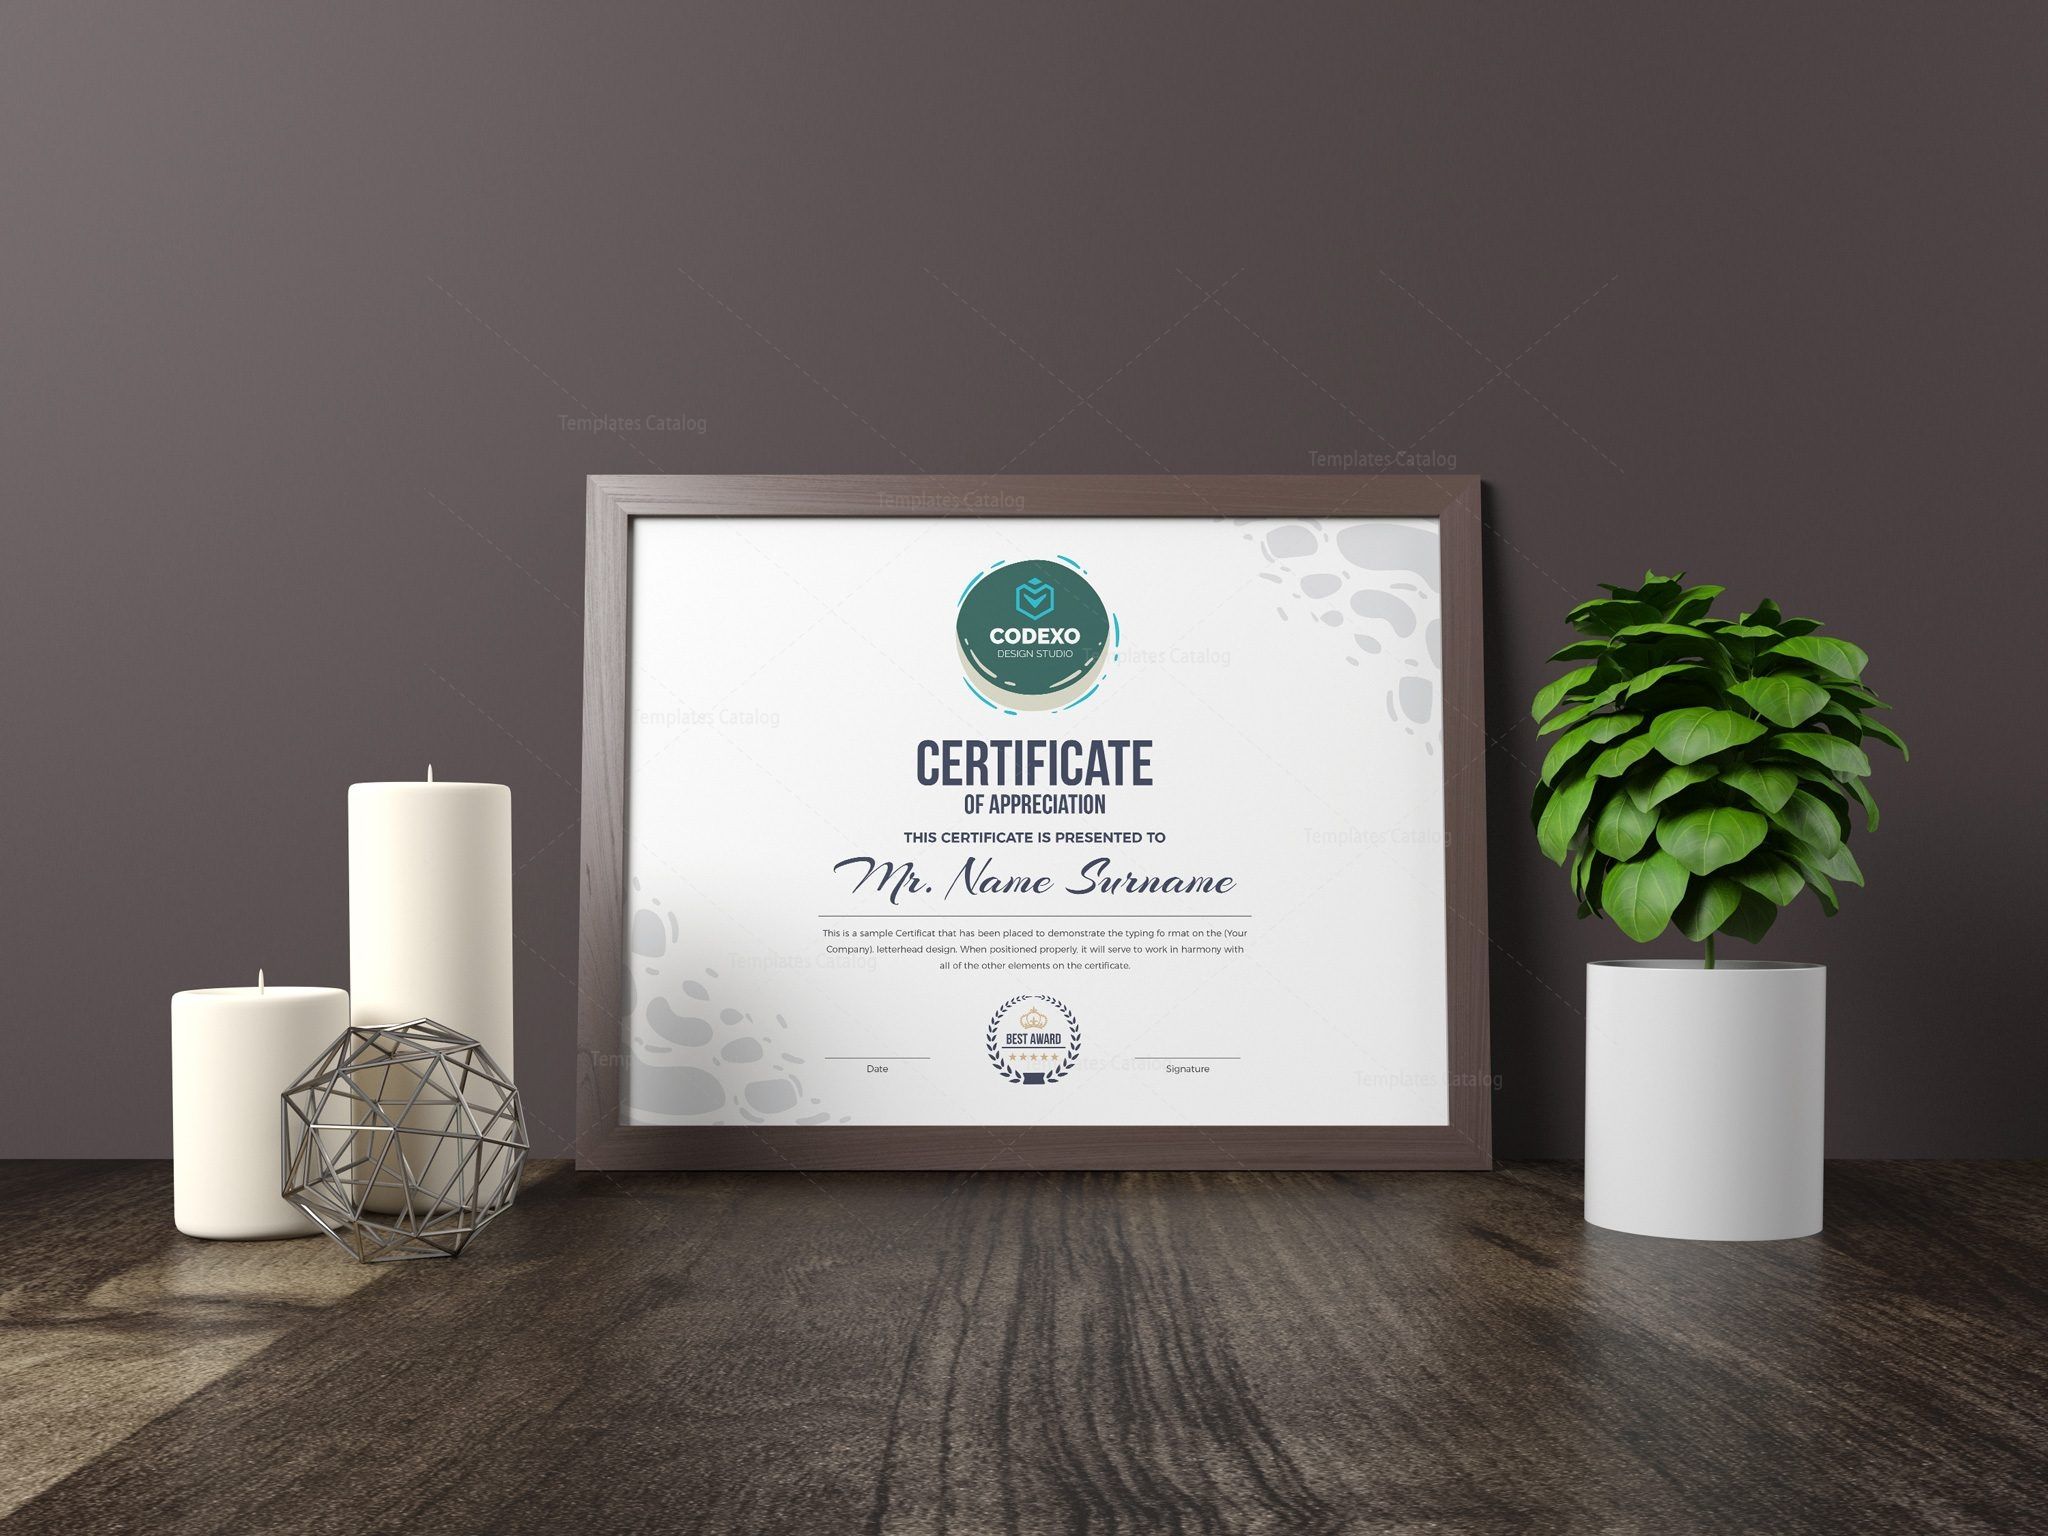 Landscape certificate template 000508 template business memorandum landscape certificate templates image collections templates athena professional landscape certificate template 1 landscape certificate templateshtml yelopaper Choice Image